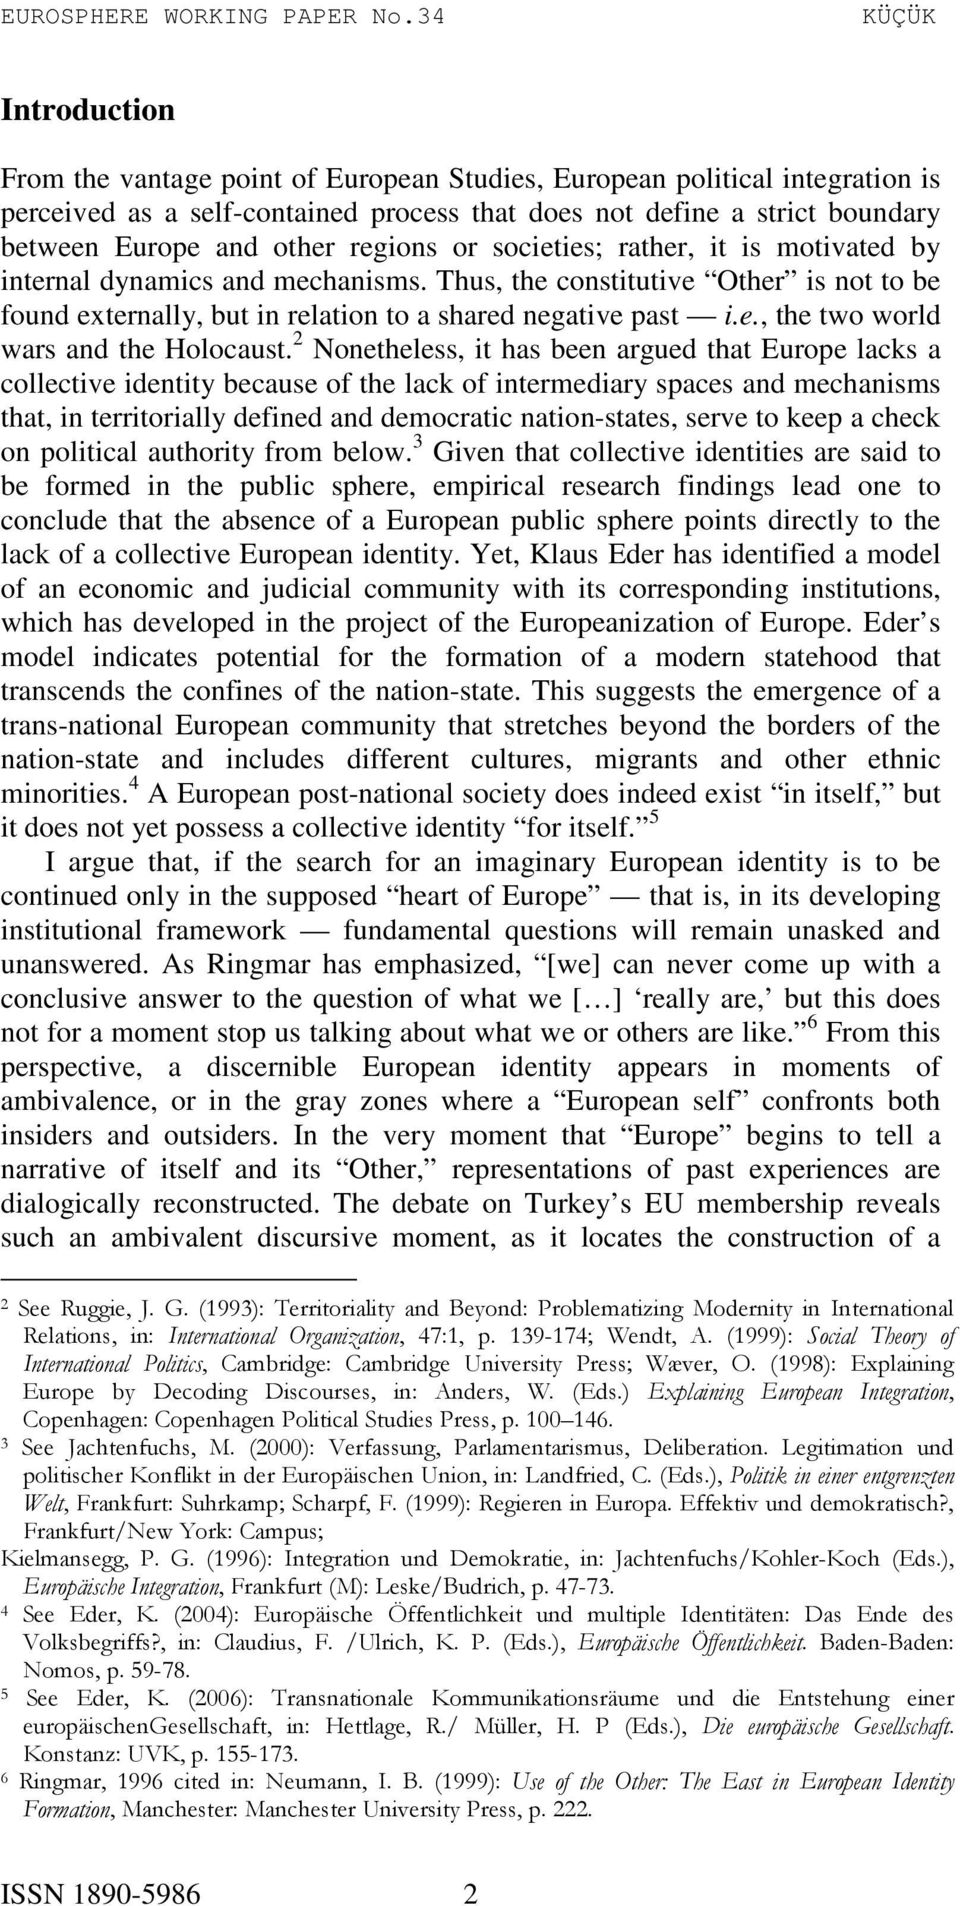 2 Nonetheless, it has been argued that Europe lacks a collective identity because of the lack of intermediary spaces and mechanisms that, in territorially defined and democratic nation-states, serve